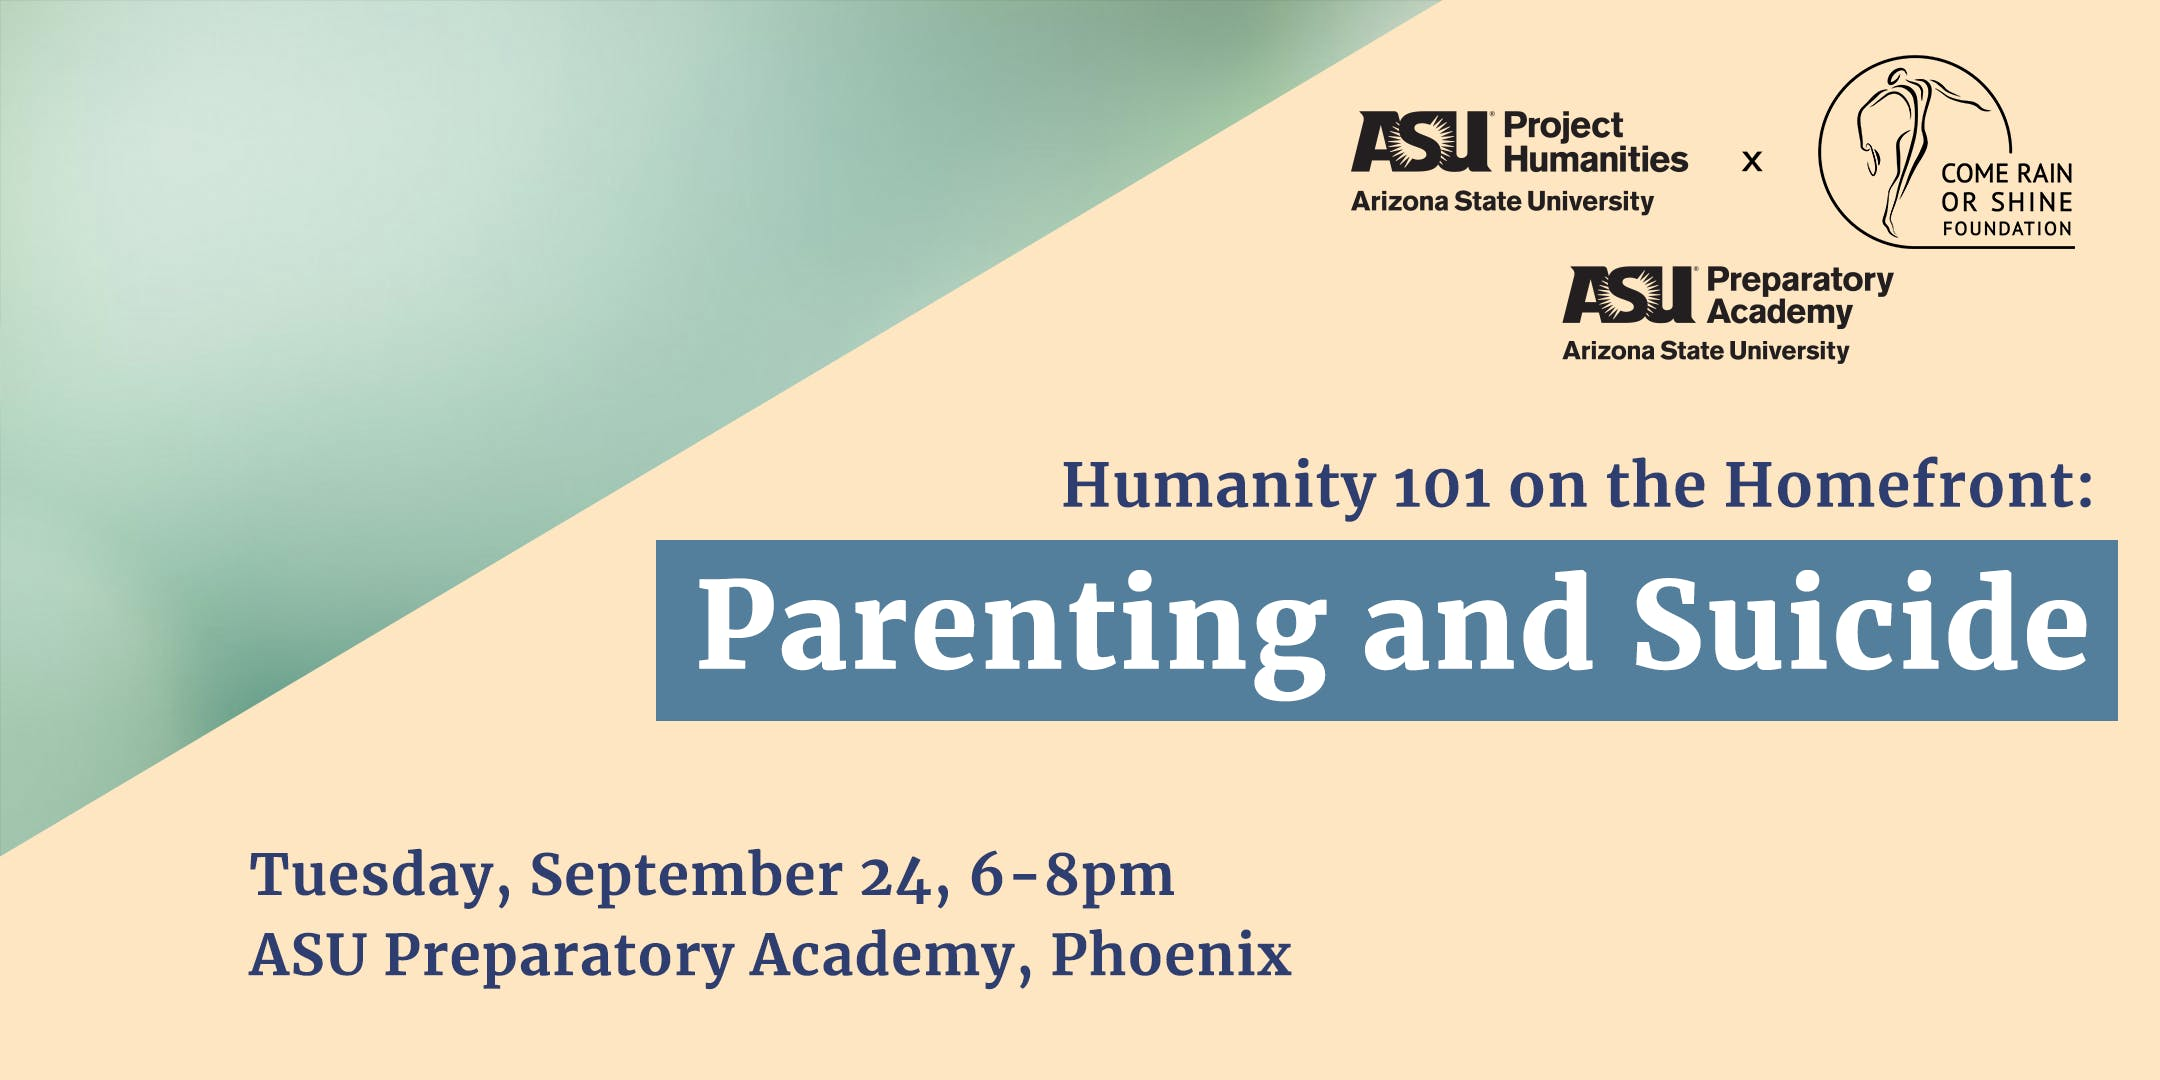 Humanity 101 on the Homefront: Parenting and Suicide